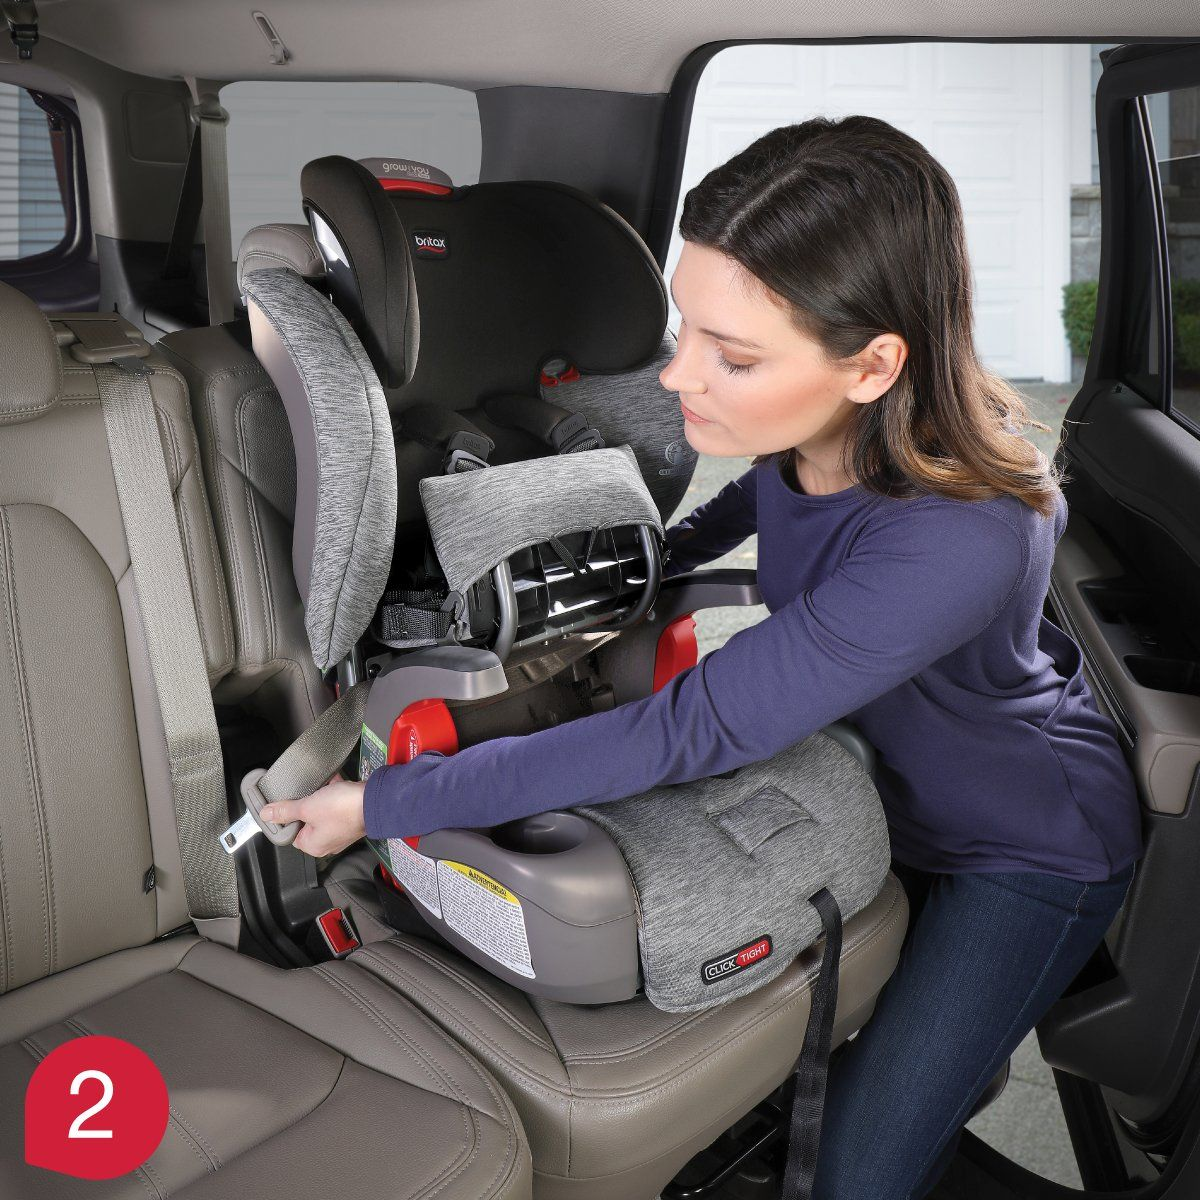 Britax Clicktight Installation System Harness 2 Booster Car Seats Product Knowledge Article In 2020 Booster Car Seat Car Seats Safe Car Seats